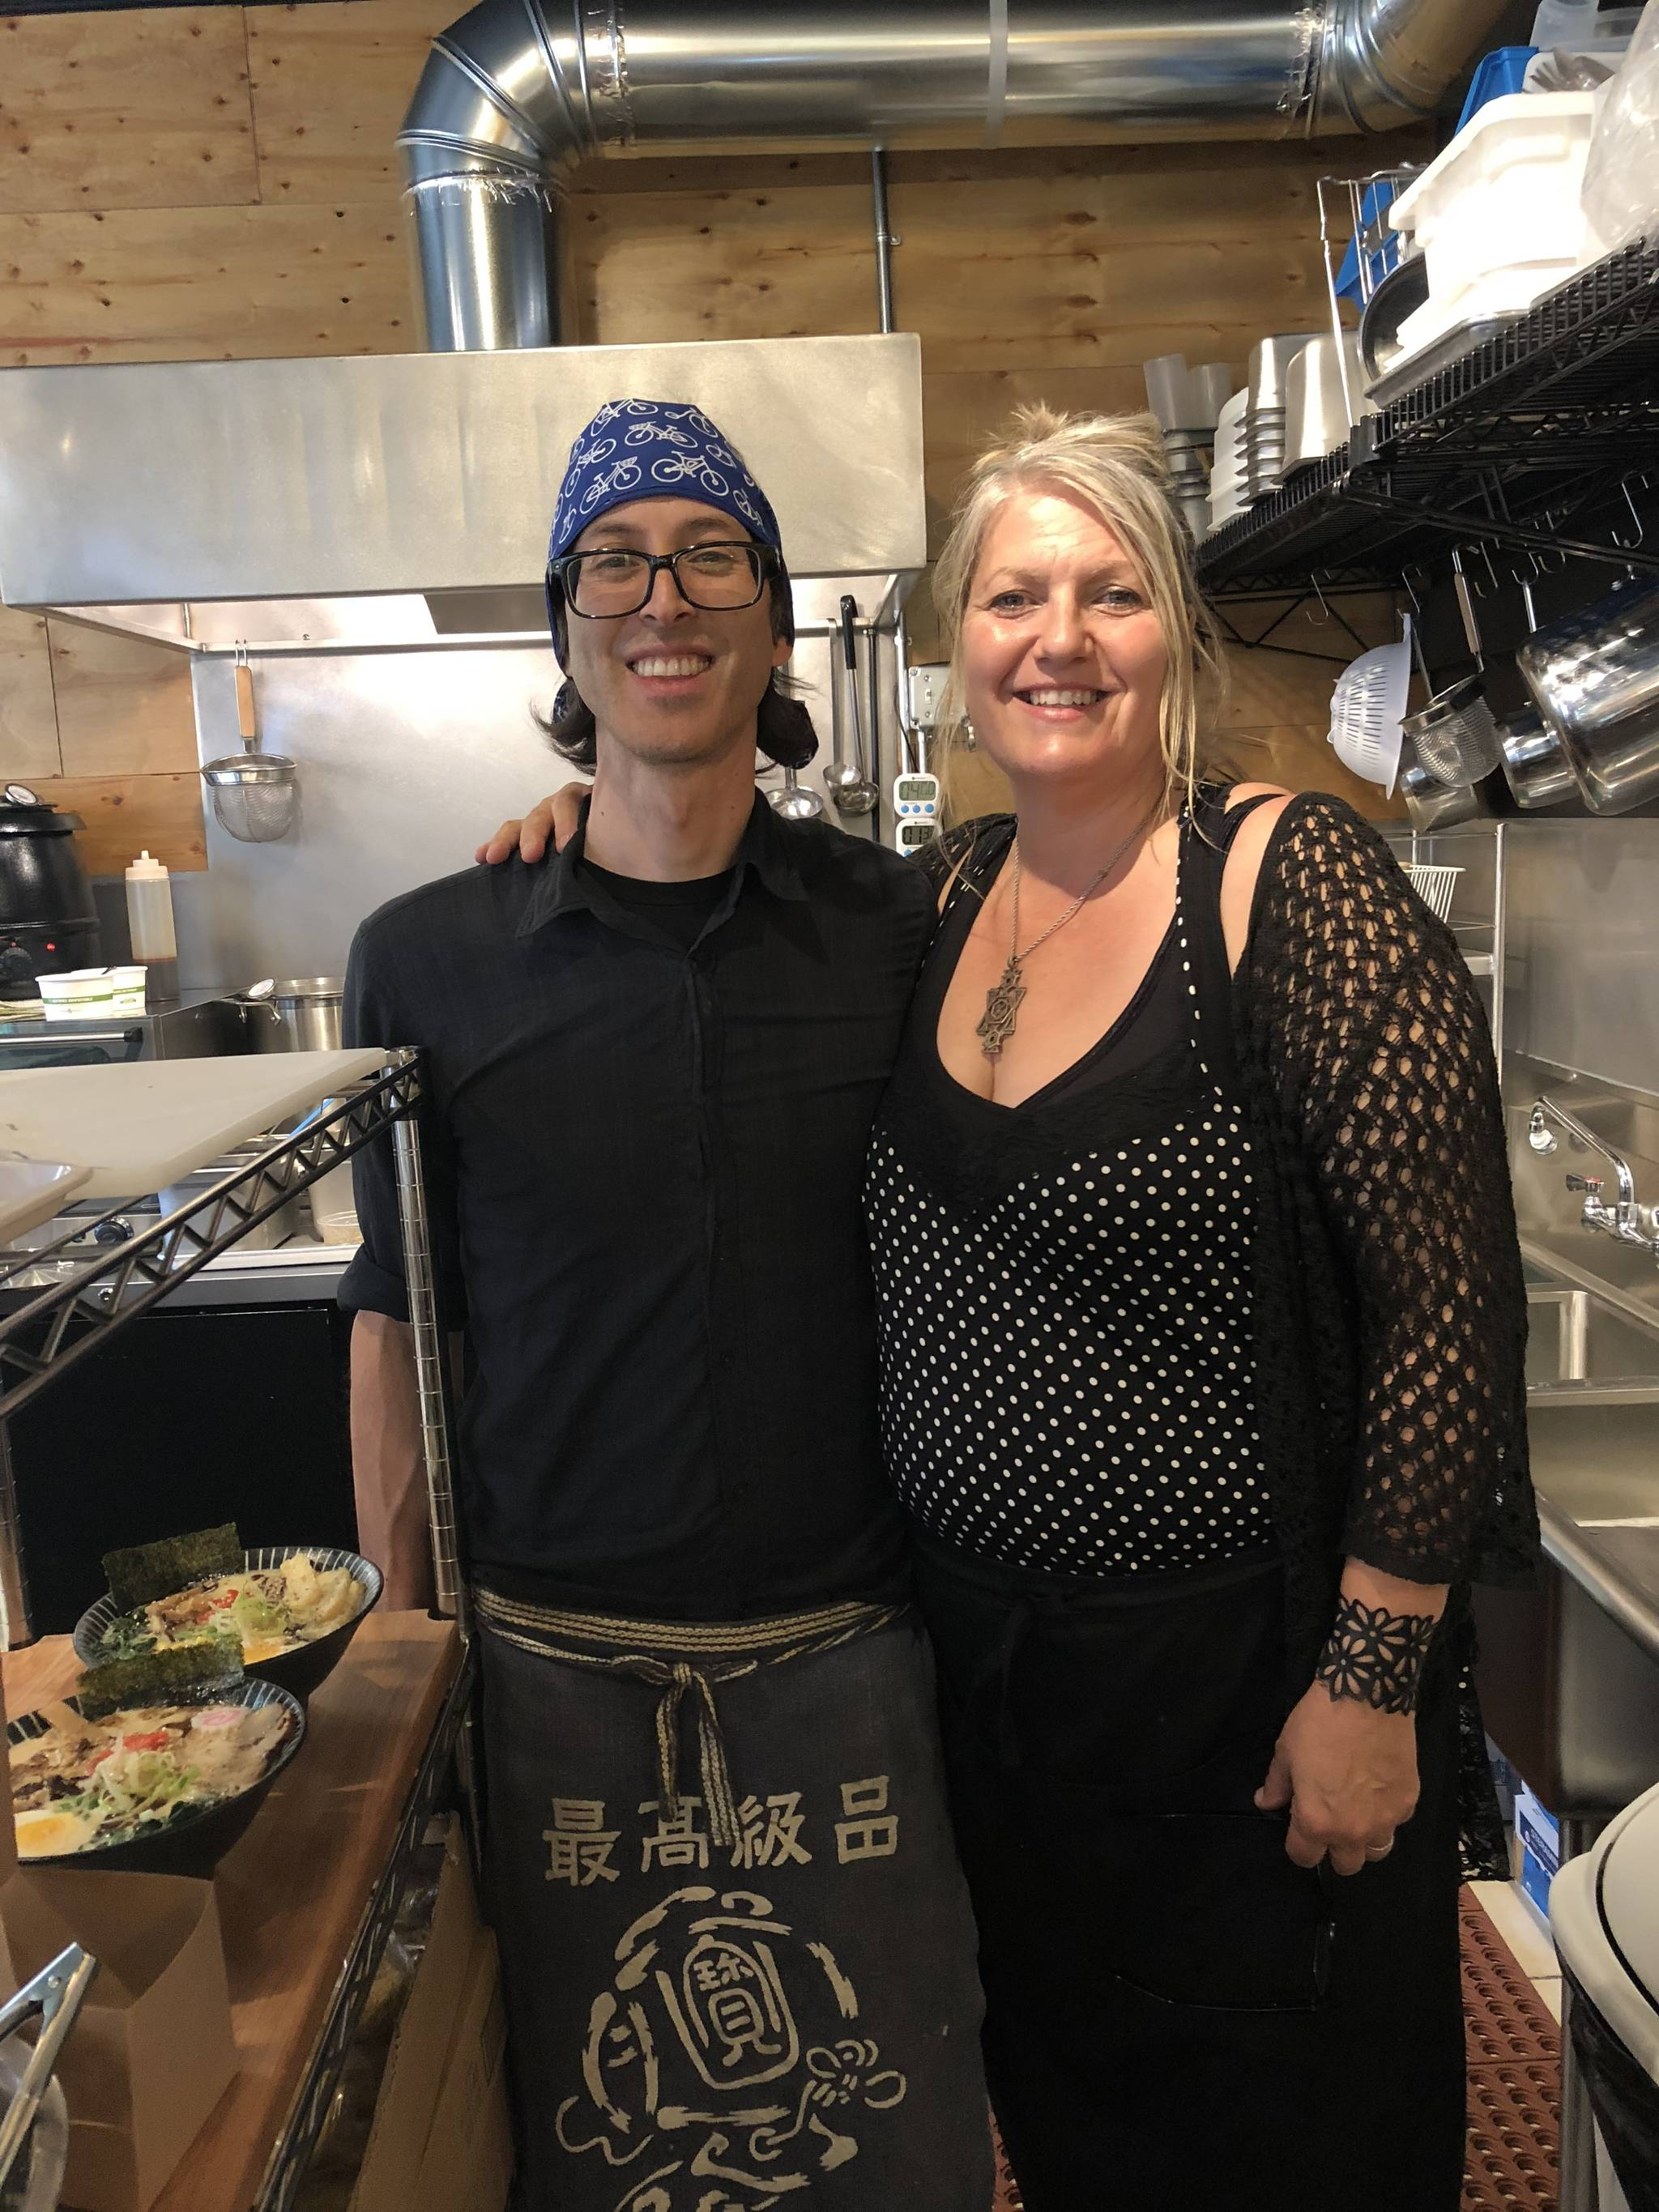 Denis Zimmermann and his wife, Cheryl, run Langley's new ramen restaurant, Ultra House, which opened in May 2018. Photo by Emily Gilbert/Whidbey News-Times.